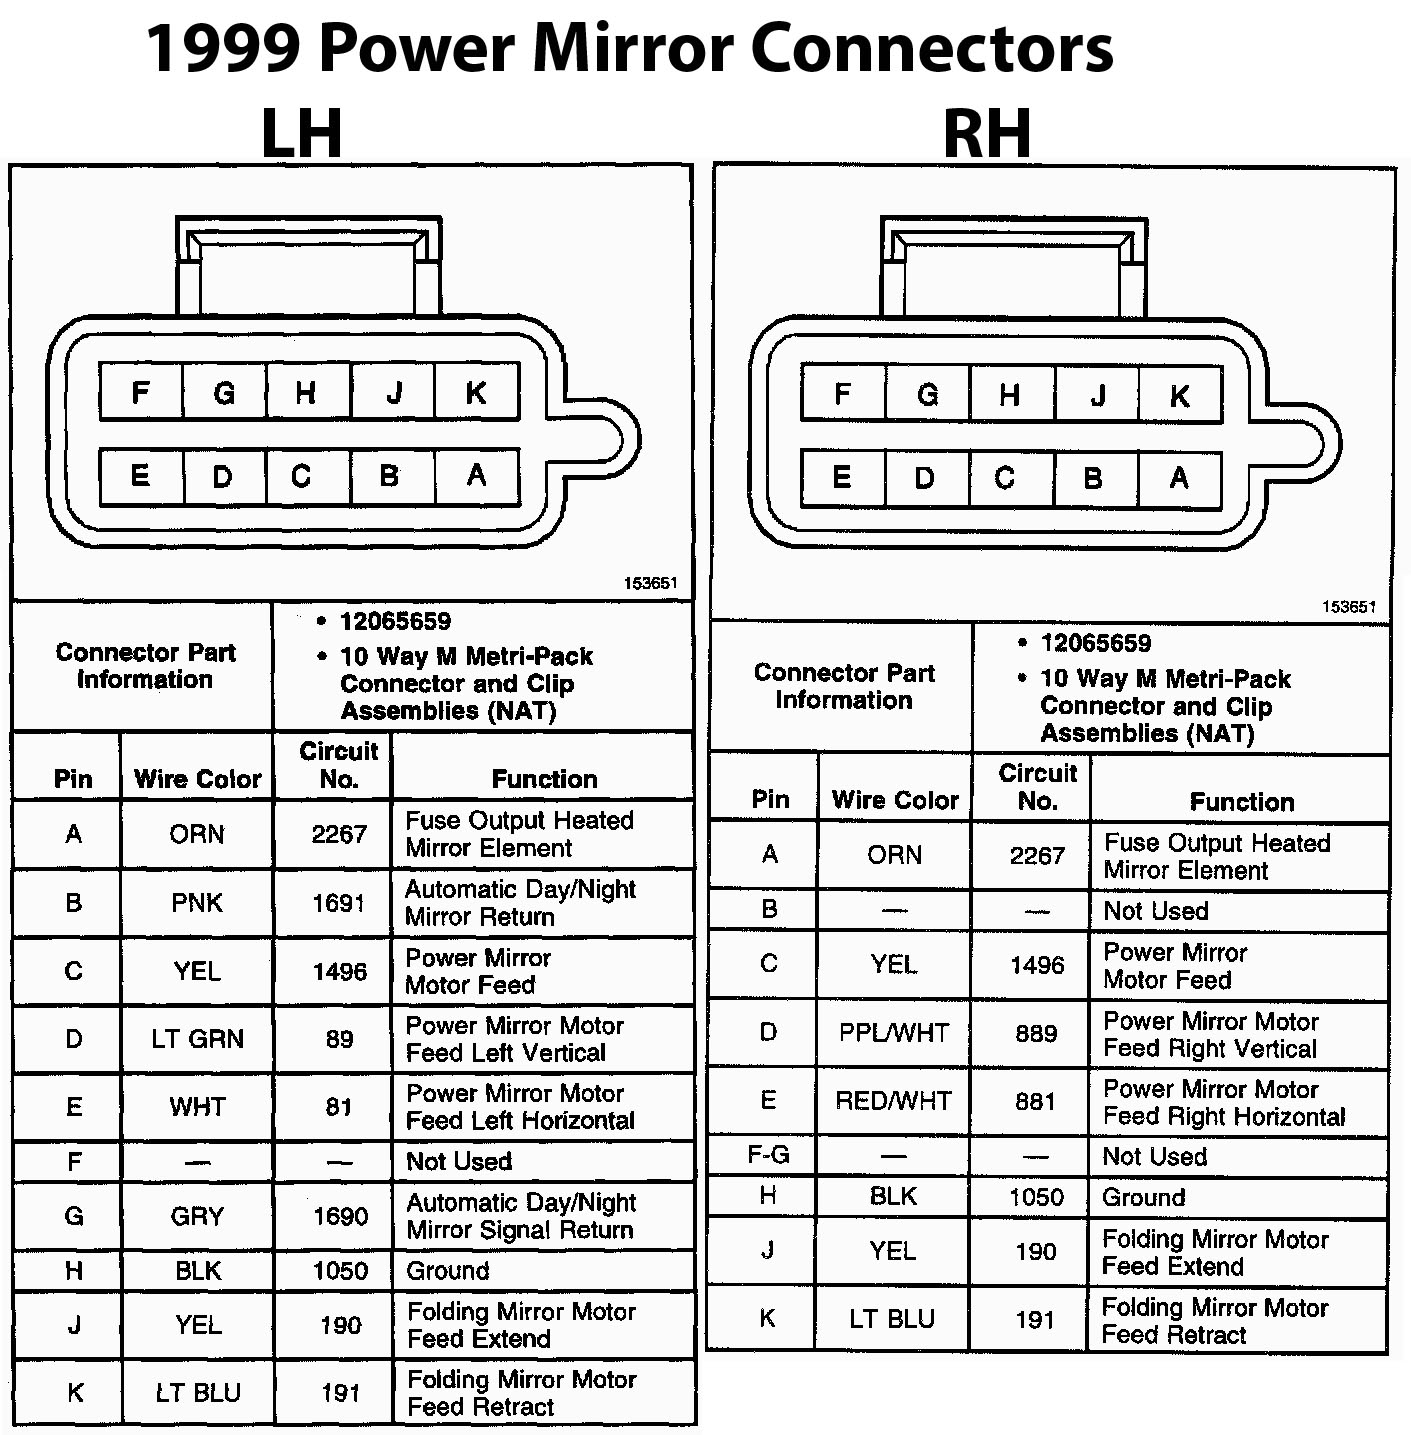 2003 ford f150 power mirror wiring diagram visual paradigm sequence 02 mirrors on a 97 help blazer forum